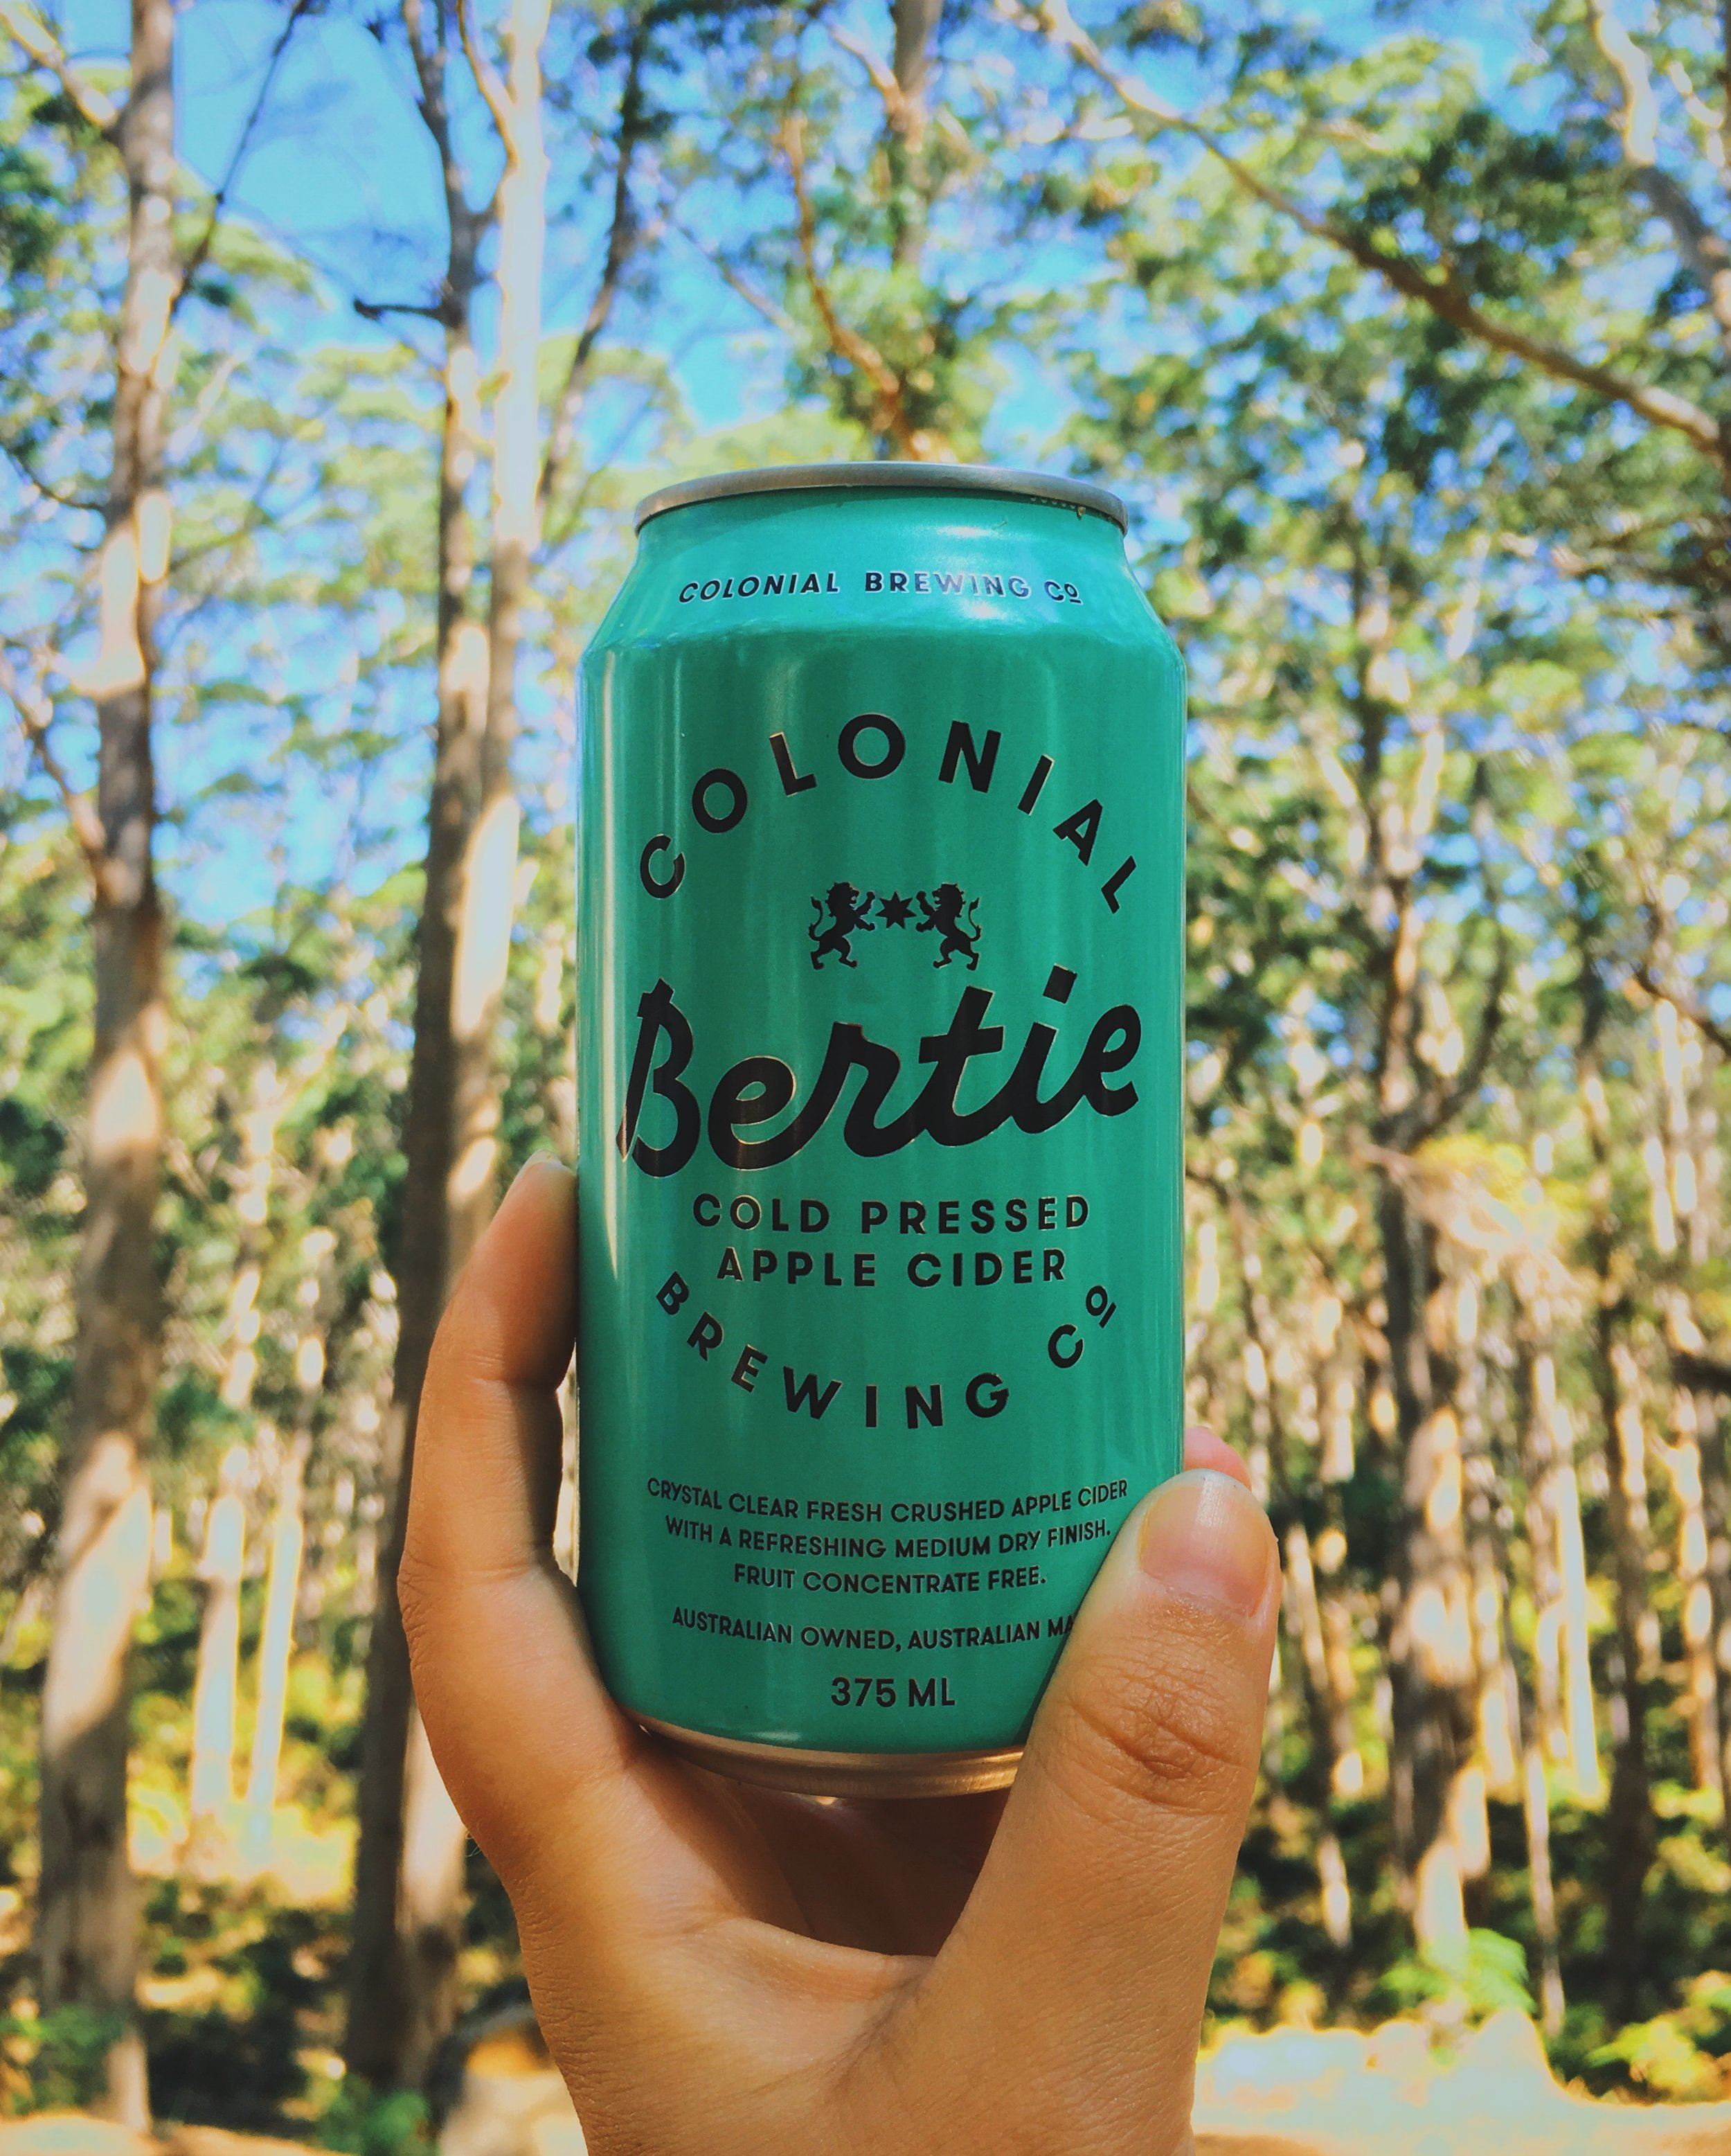 bertie cider / featured on bertie social media